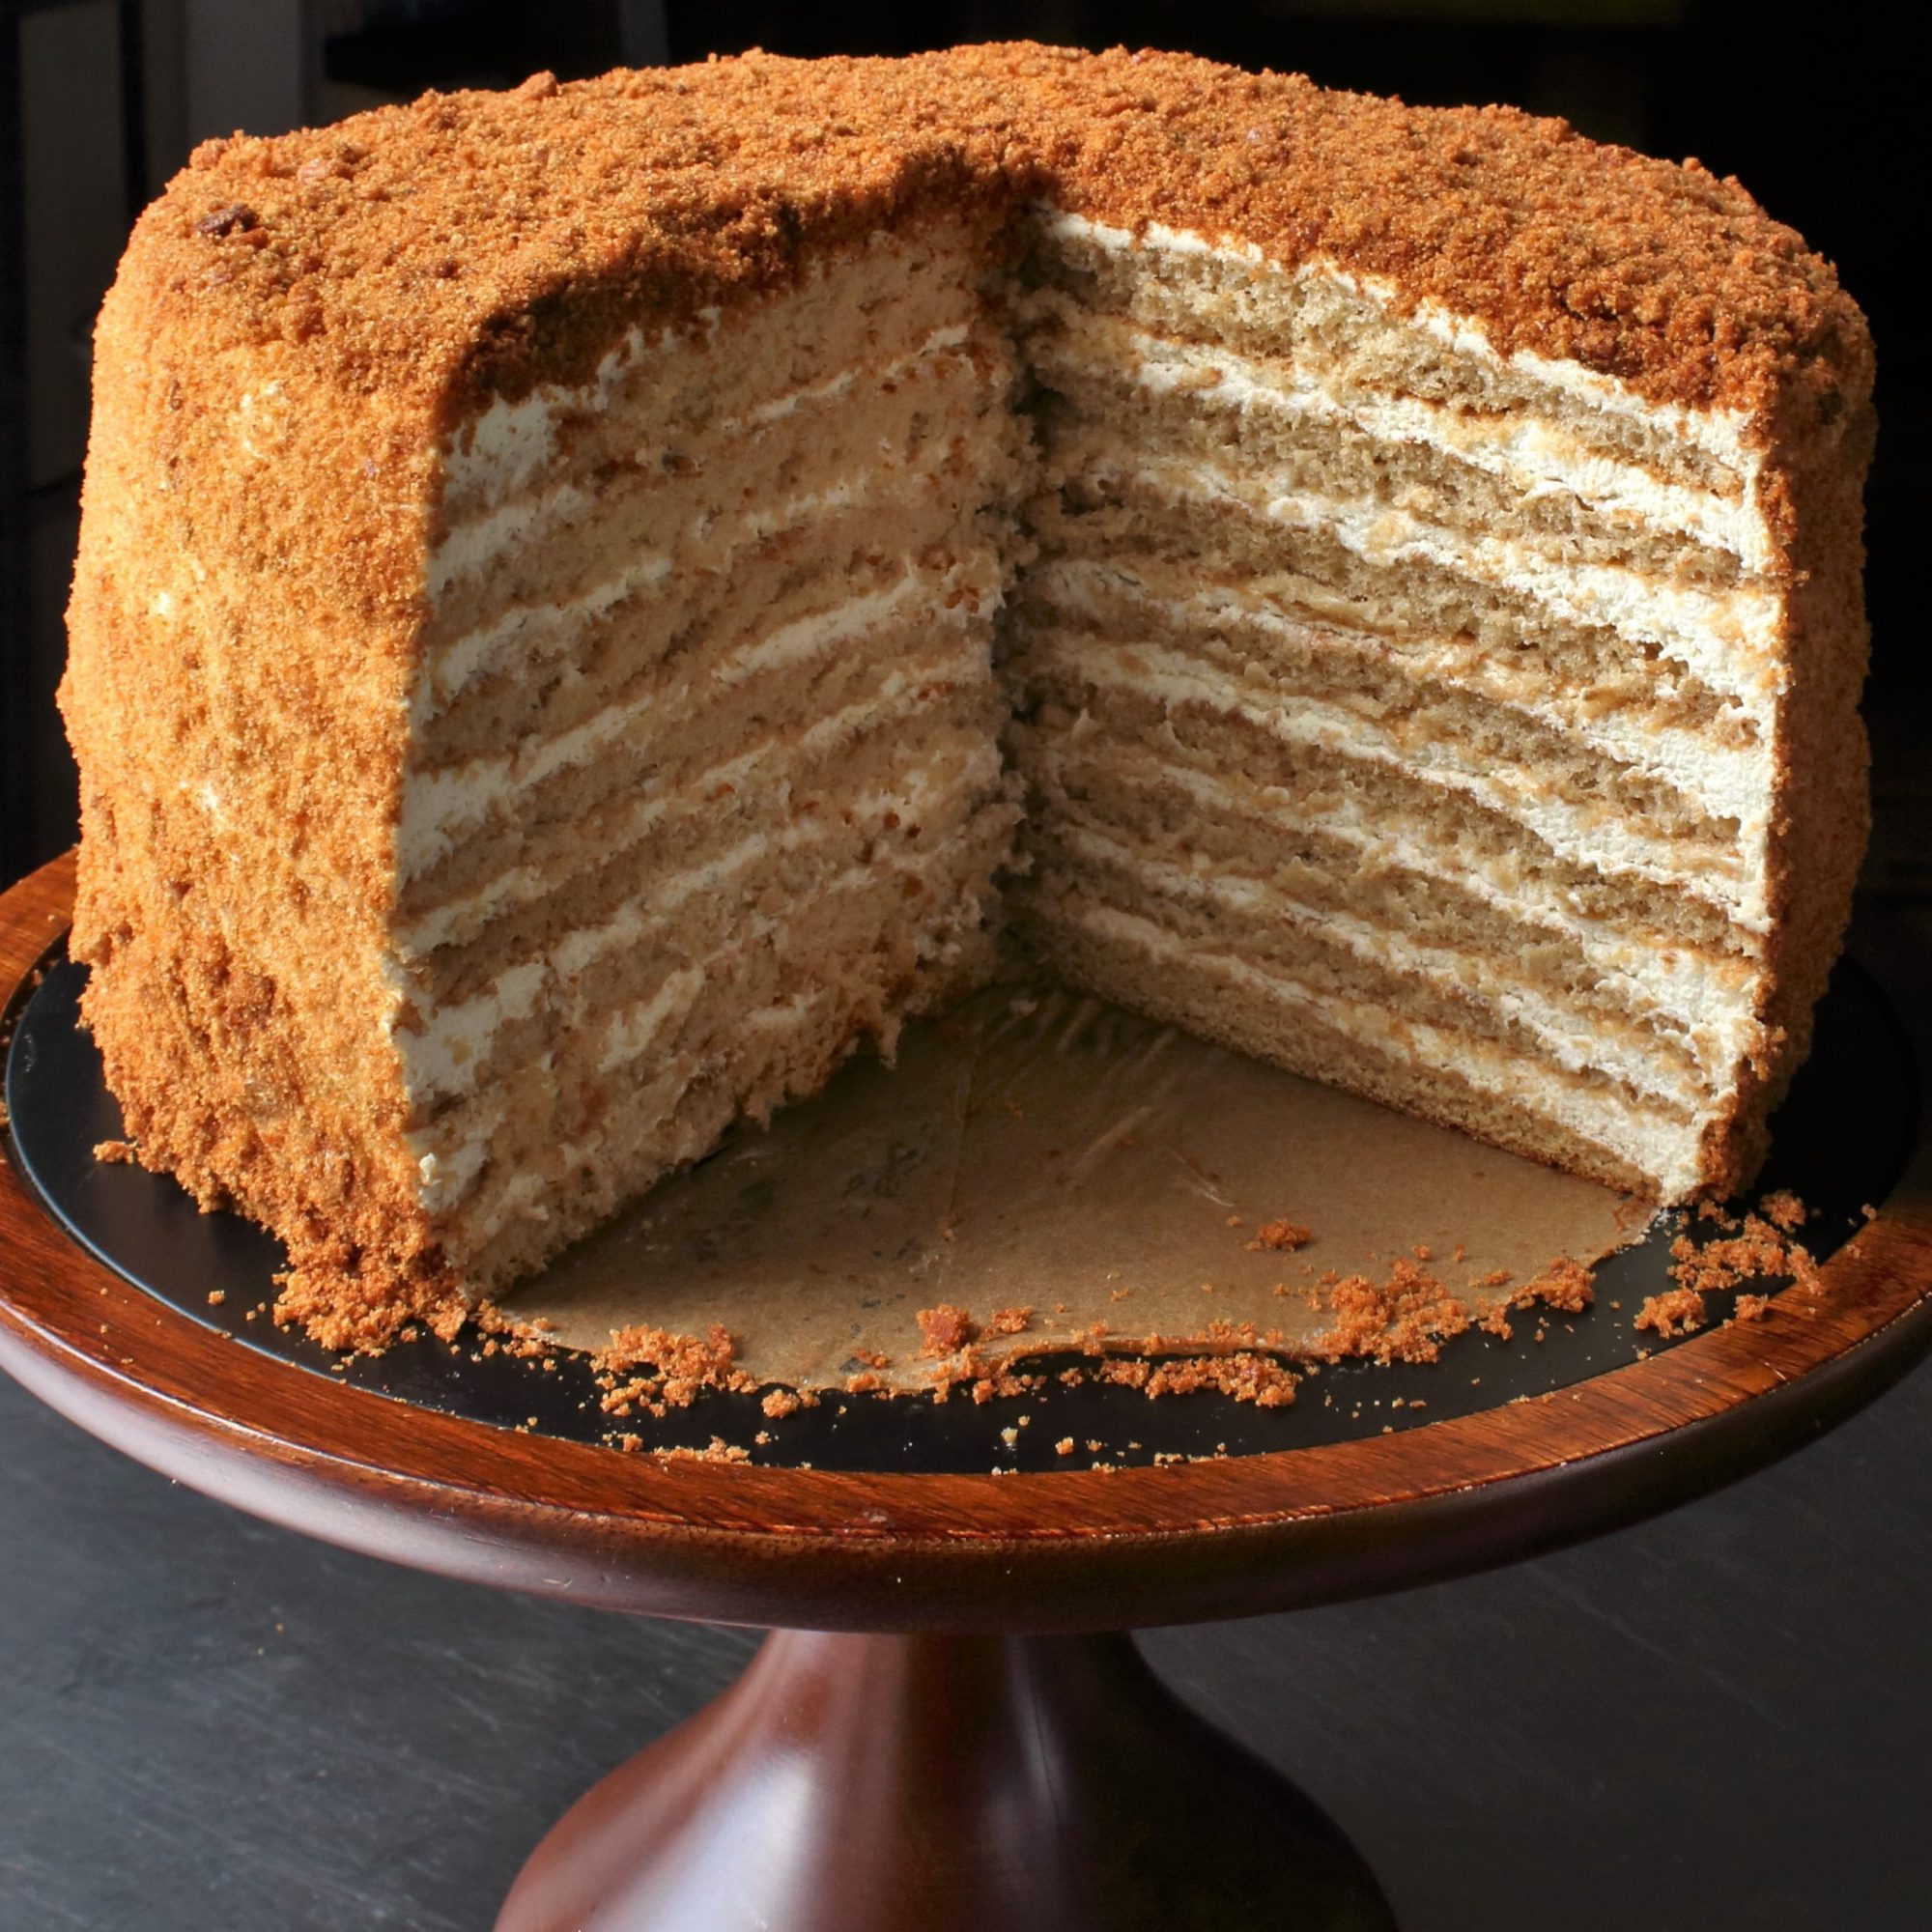 Russian Honey Cake on a wooden cake stand